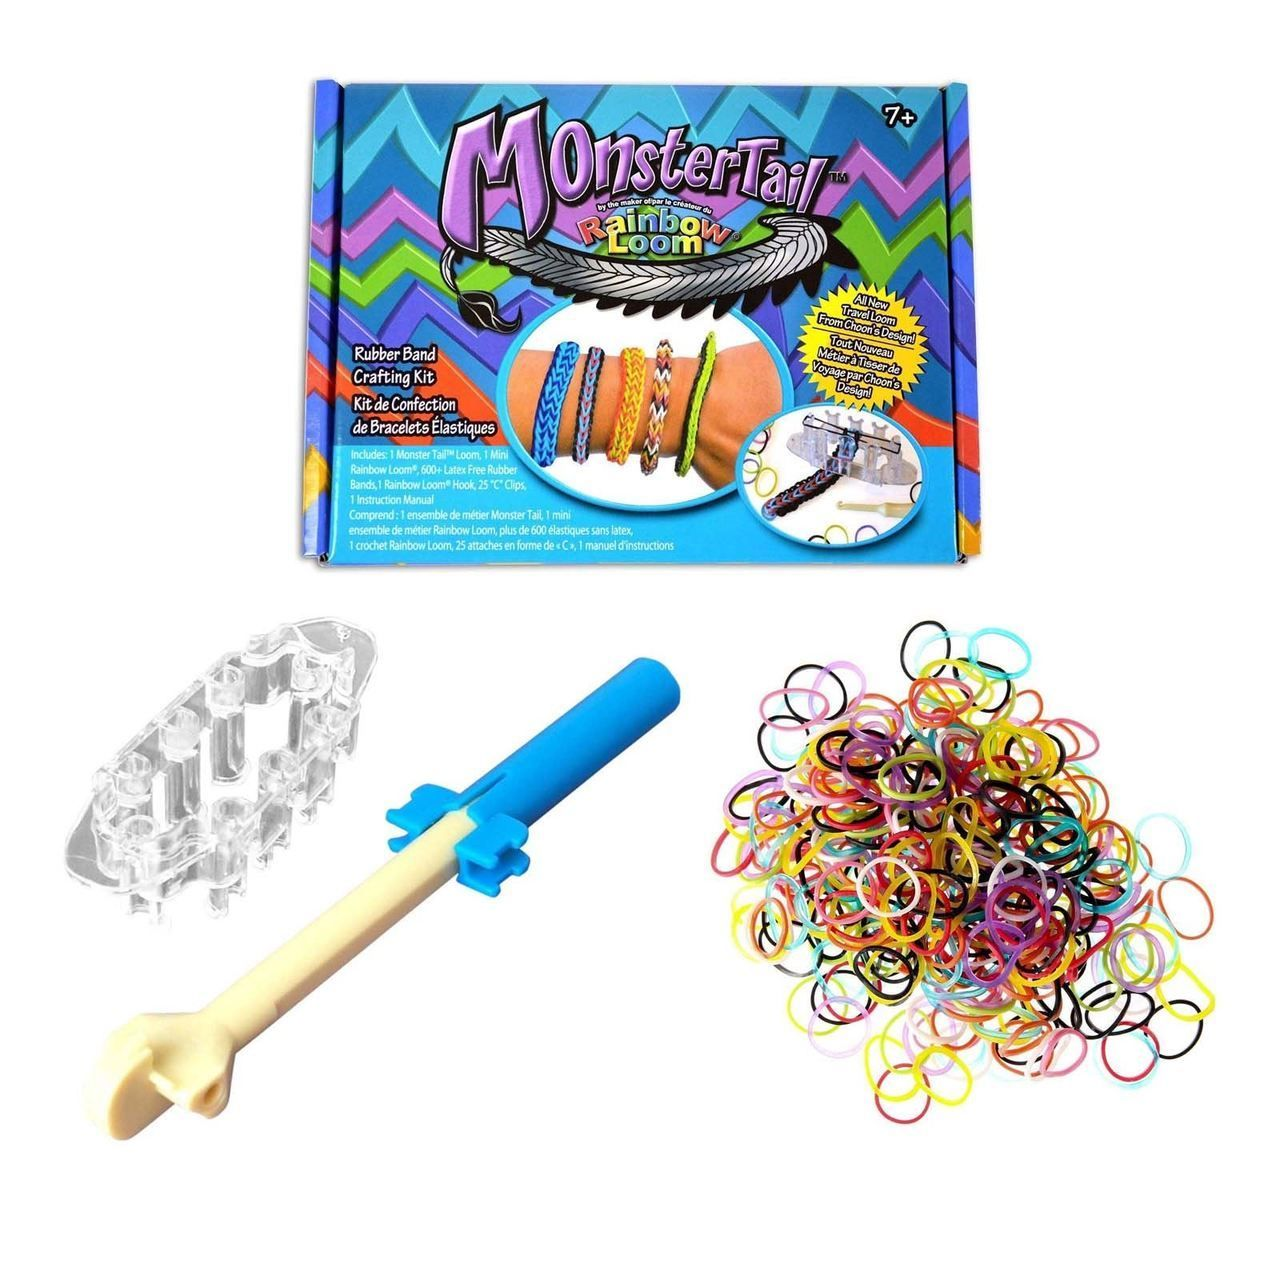 The Official Rainbow Loom Monster Tail Kit, £12.99